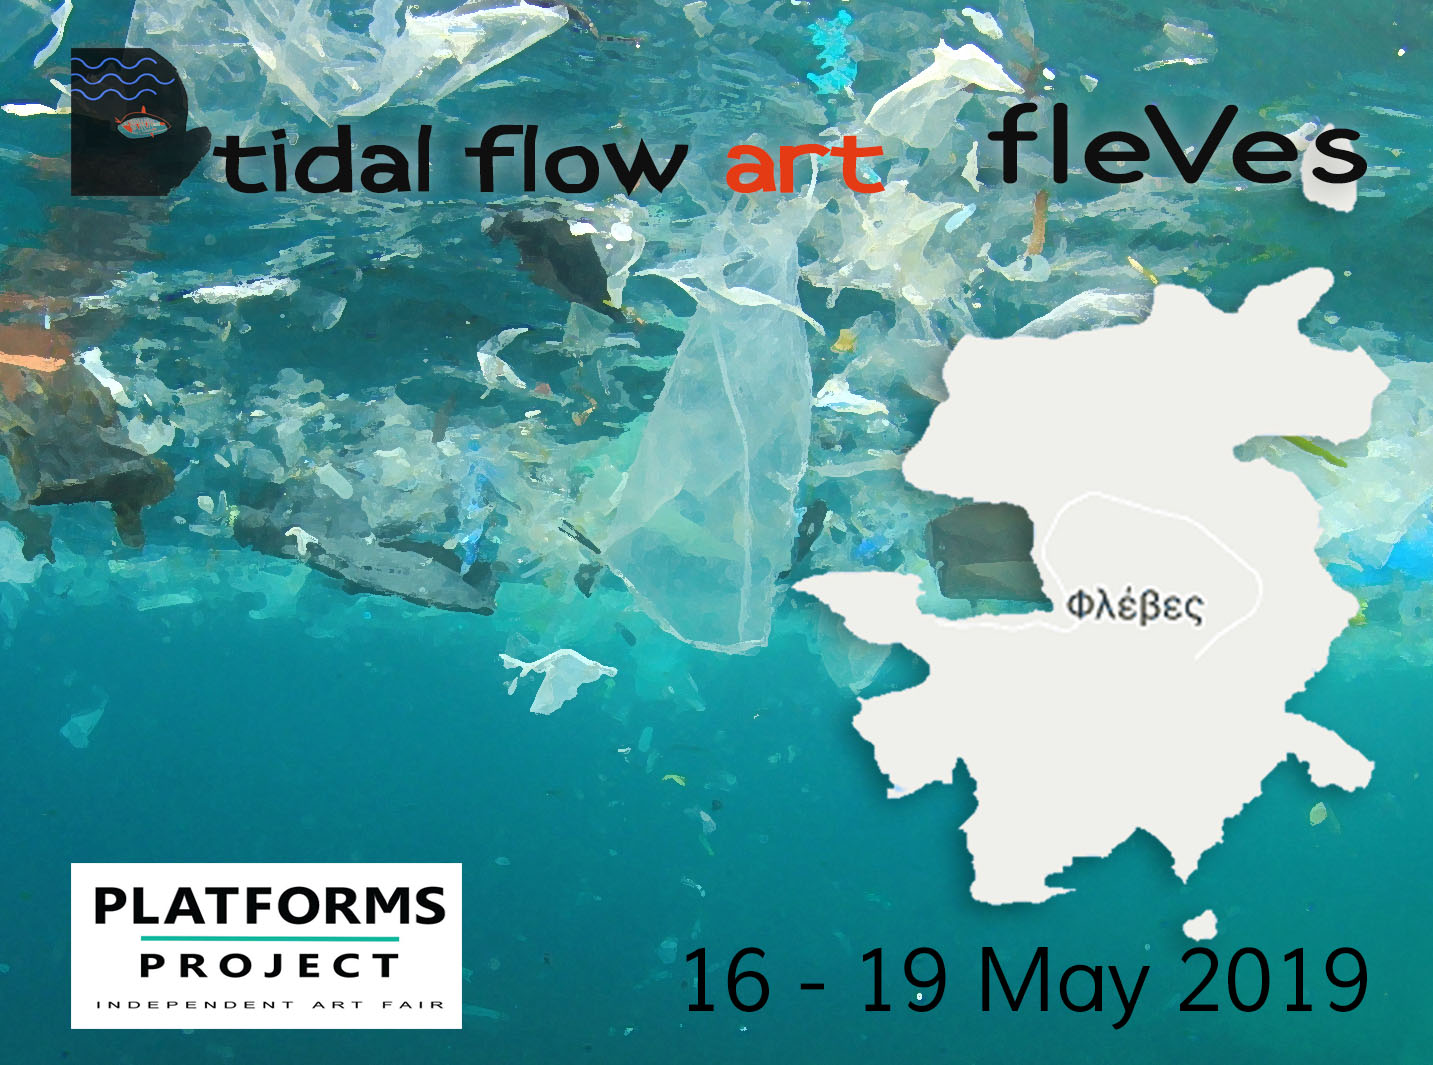 fleVes project @ platforms